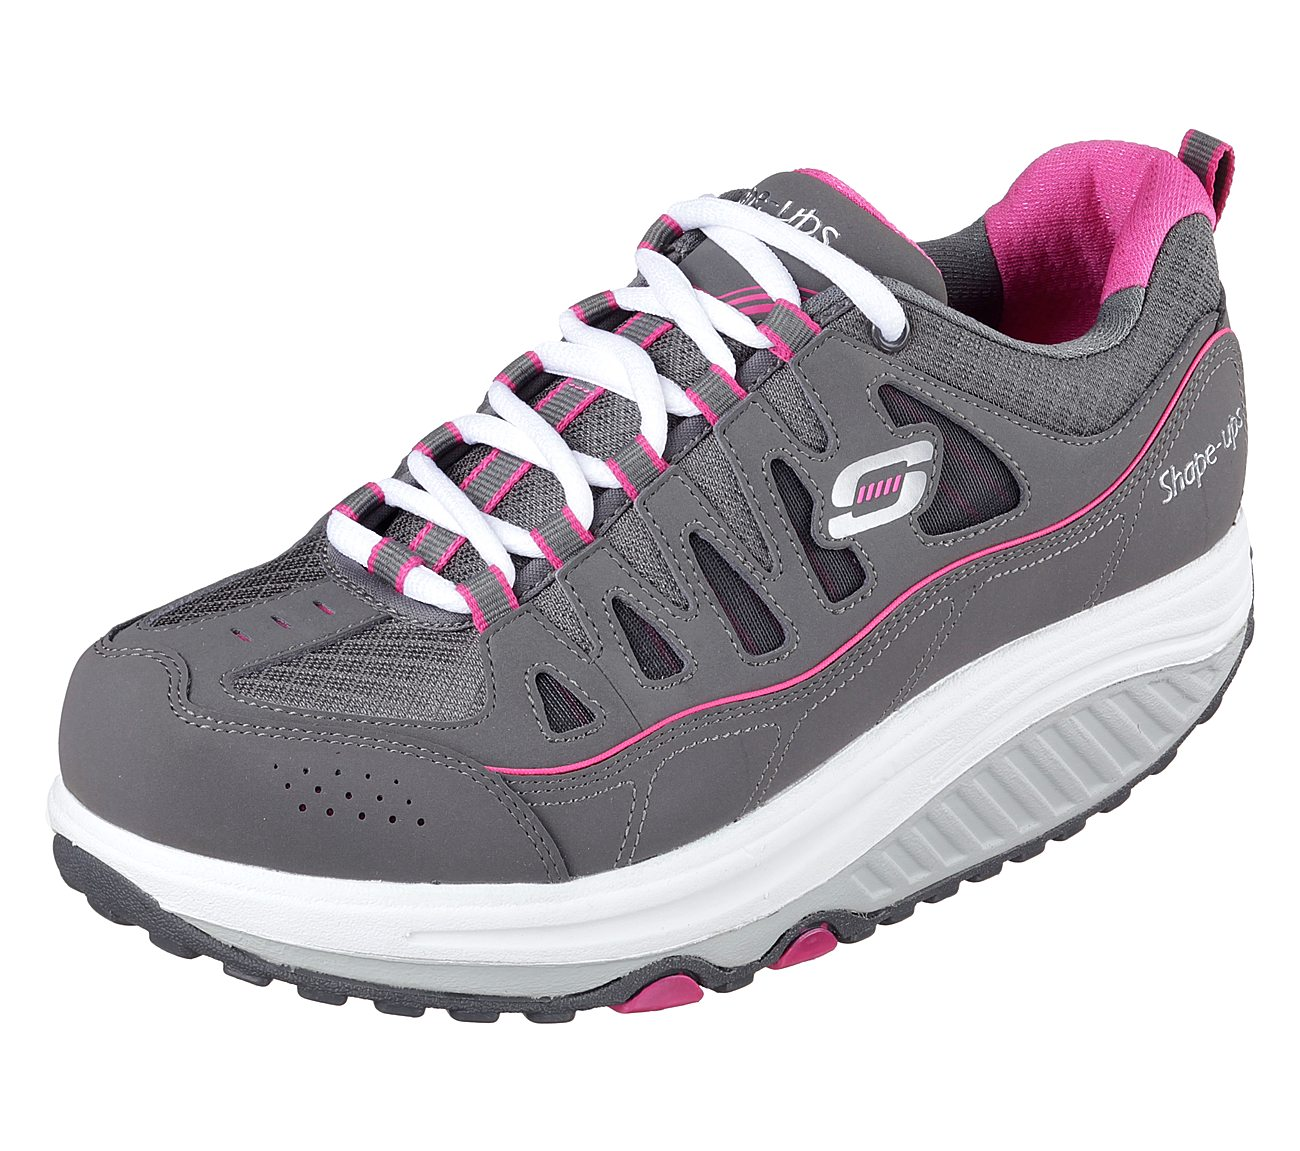 0285e5b2e6c Buy SKECHERS Shape-ups 2.0 - Comfort Stride Shape-ups Shoes only  100.00